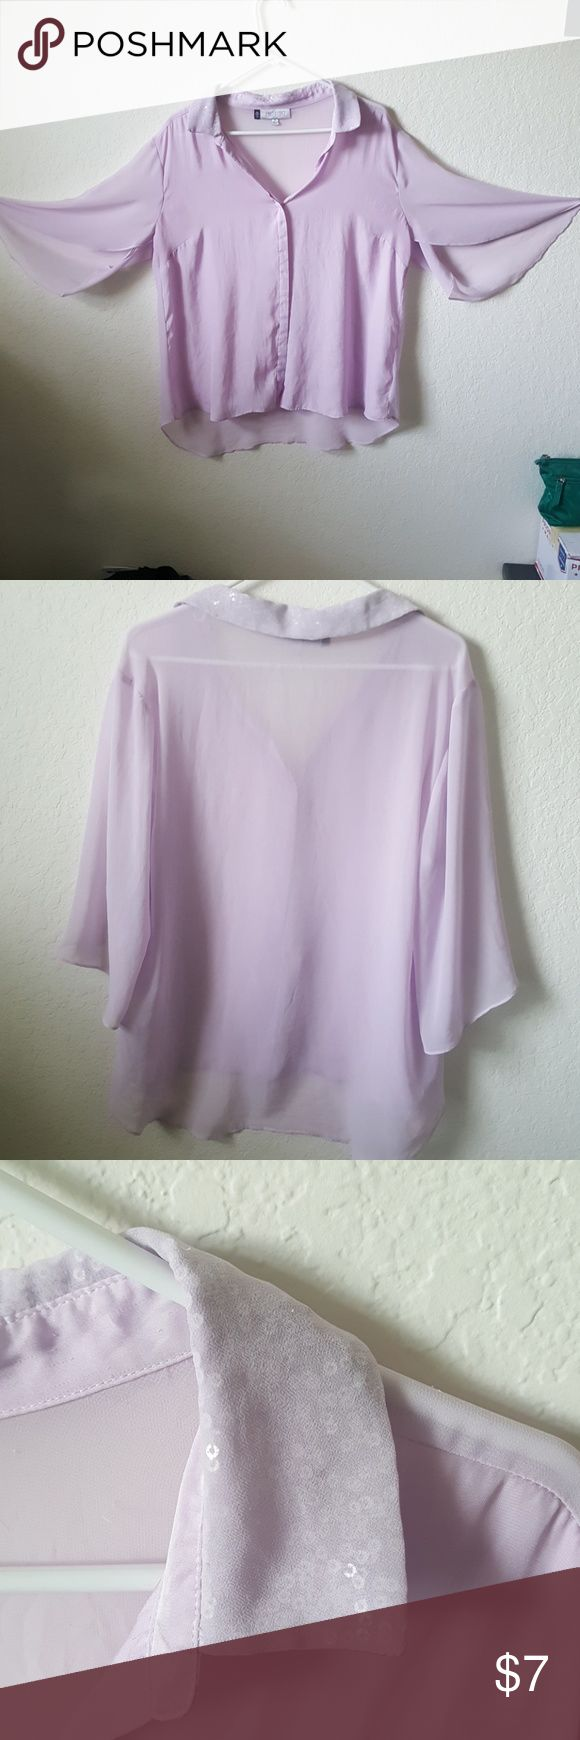 Jennifer Lopez Sheer Lilac Blouse w Sequin Collar Has been worn. No longer my size and is very well taken care of. I always price my items as low as possible so you can bundle and save when you purchase 3 there is a 20% discount. I accept offers. This is a completely smoke-free home.  Thank you so much for stopping by my closet! Happy poshing Jennifer Lopez Tops Blouses